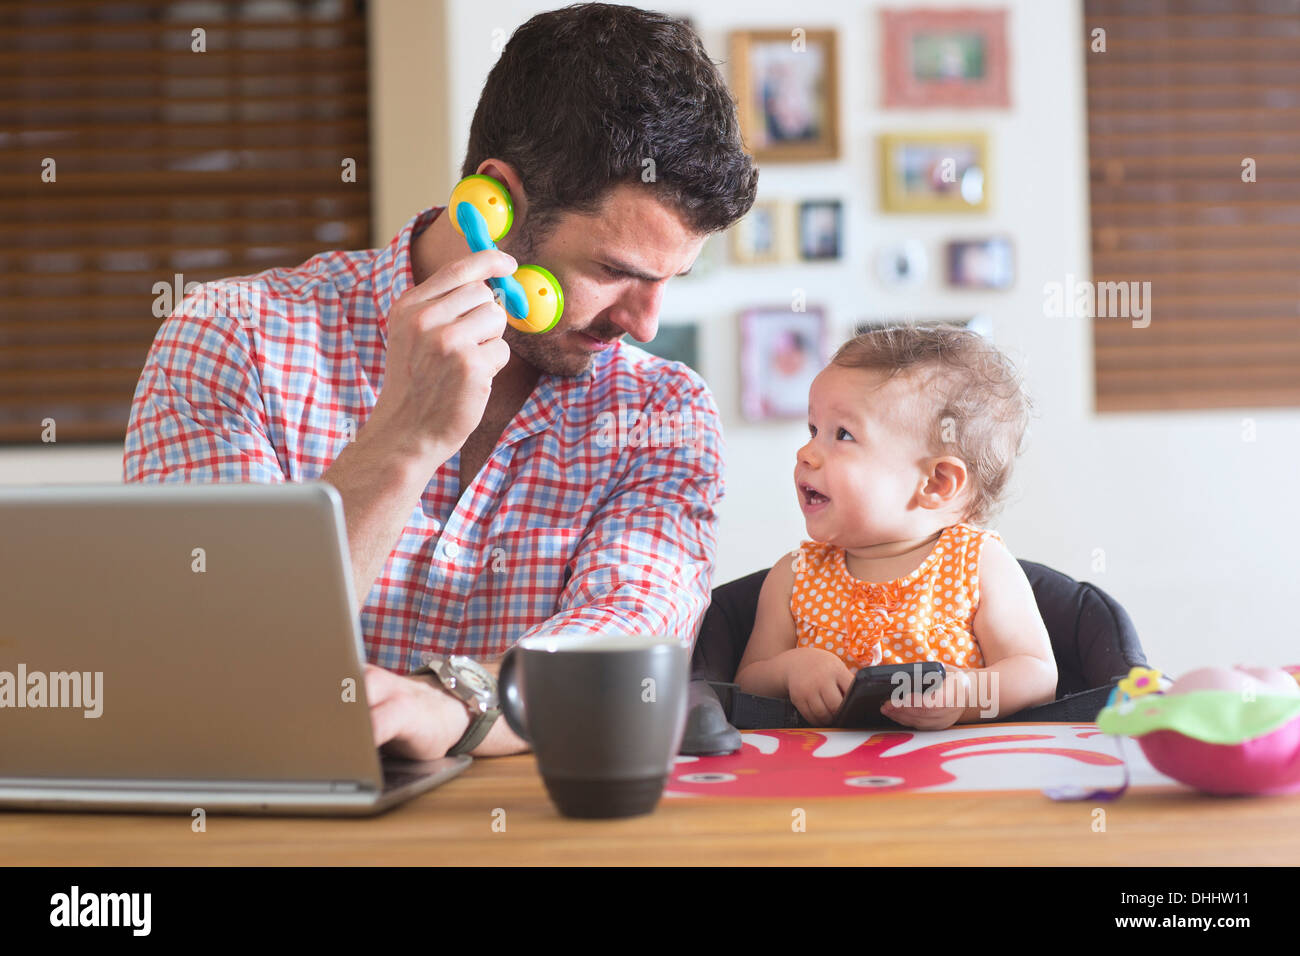 Man and baby sitting at kitchen counter playing with smartphone and toy phone - Stock Image